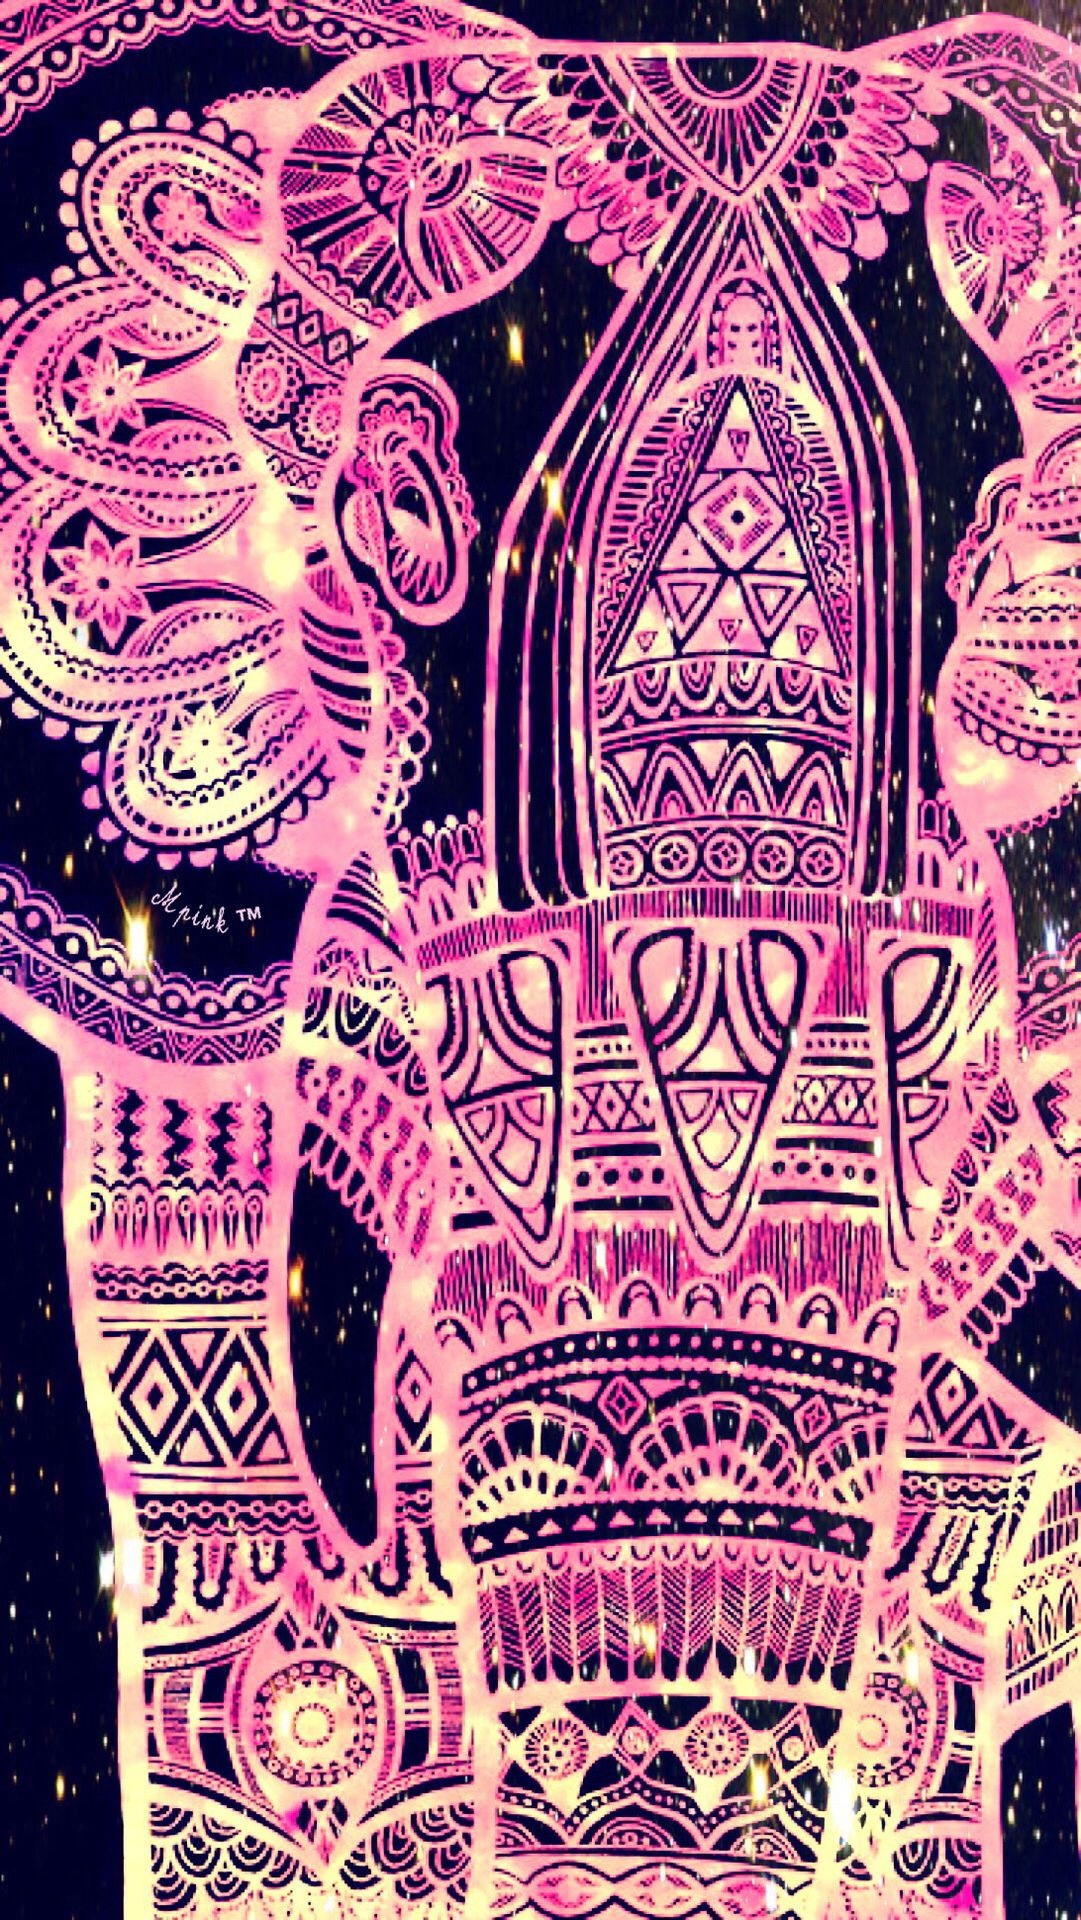 Tribal Pink Elephant Wallpaper/Lockscreen Girly, Cute